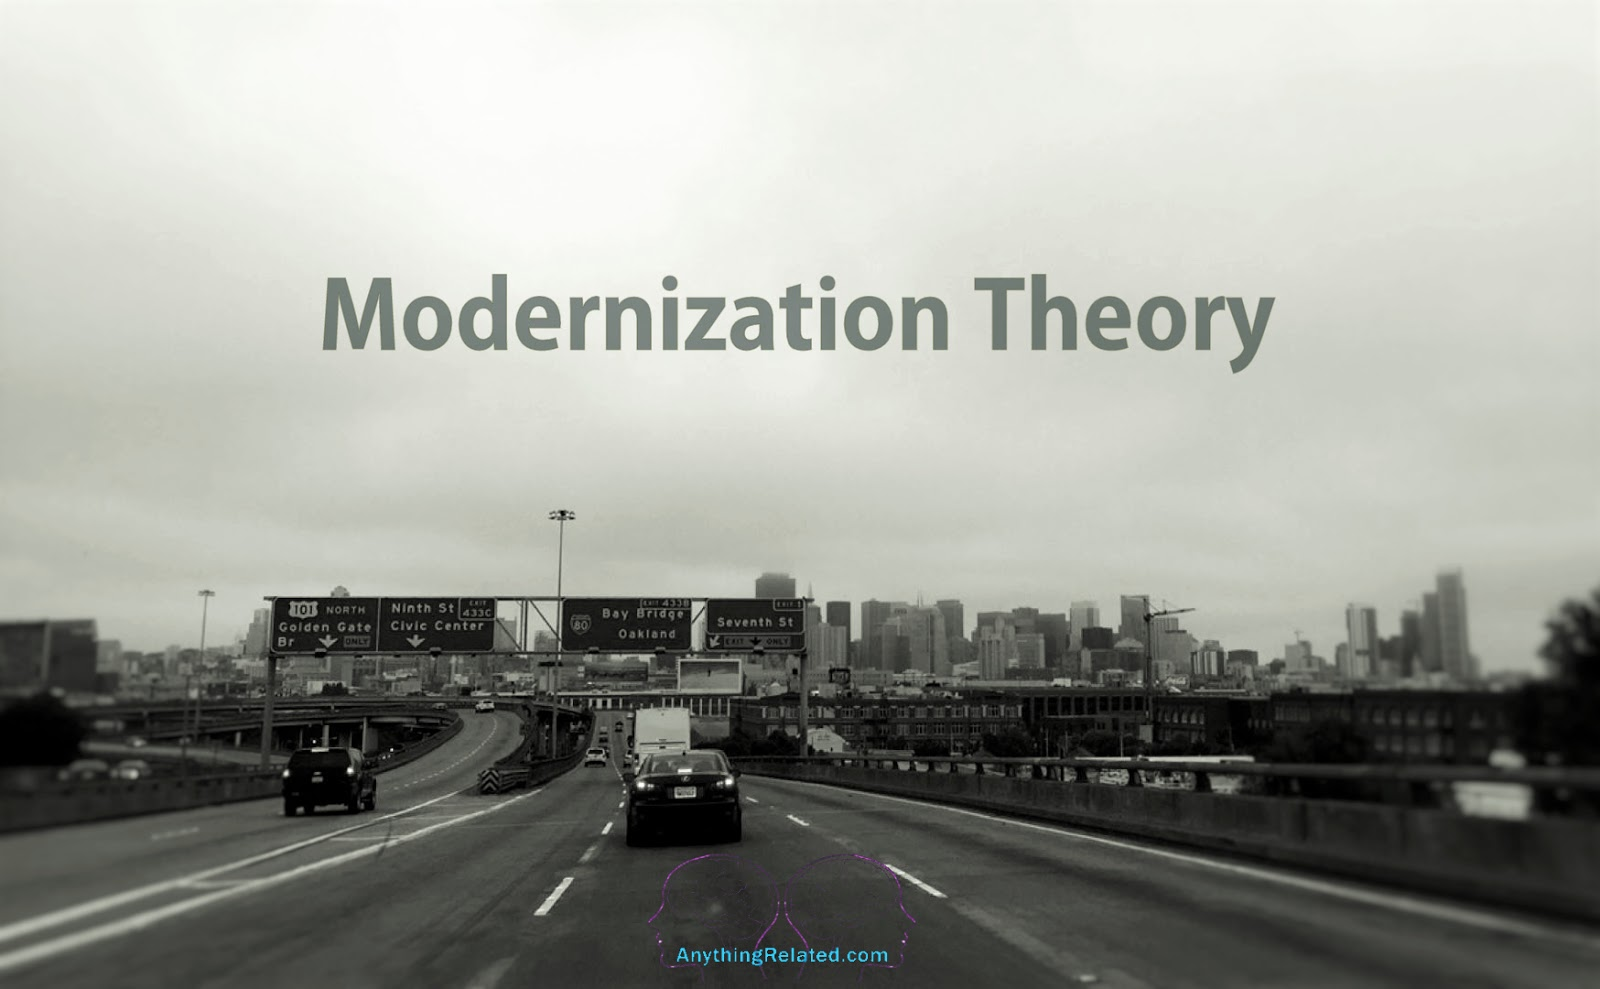 modernization 2 essay Modern racism essay of course, racism is what it entails, it is an unjust means of categorizing people, and yet it still prevails in the modern times.